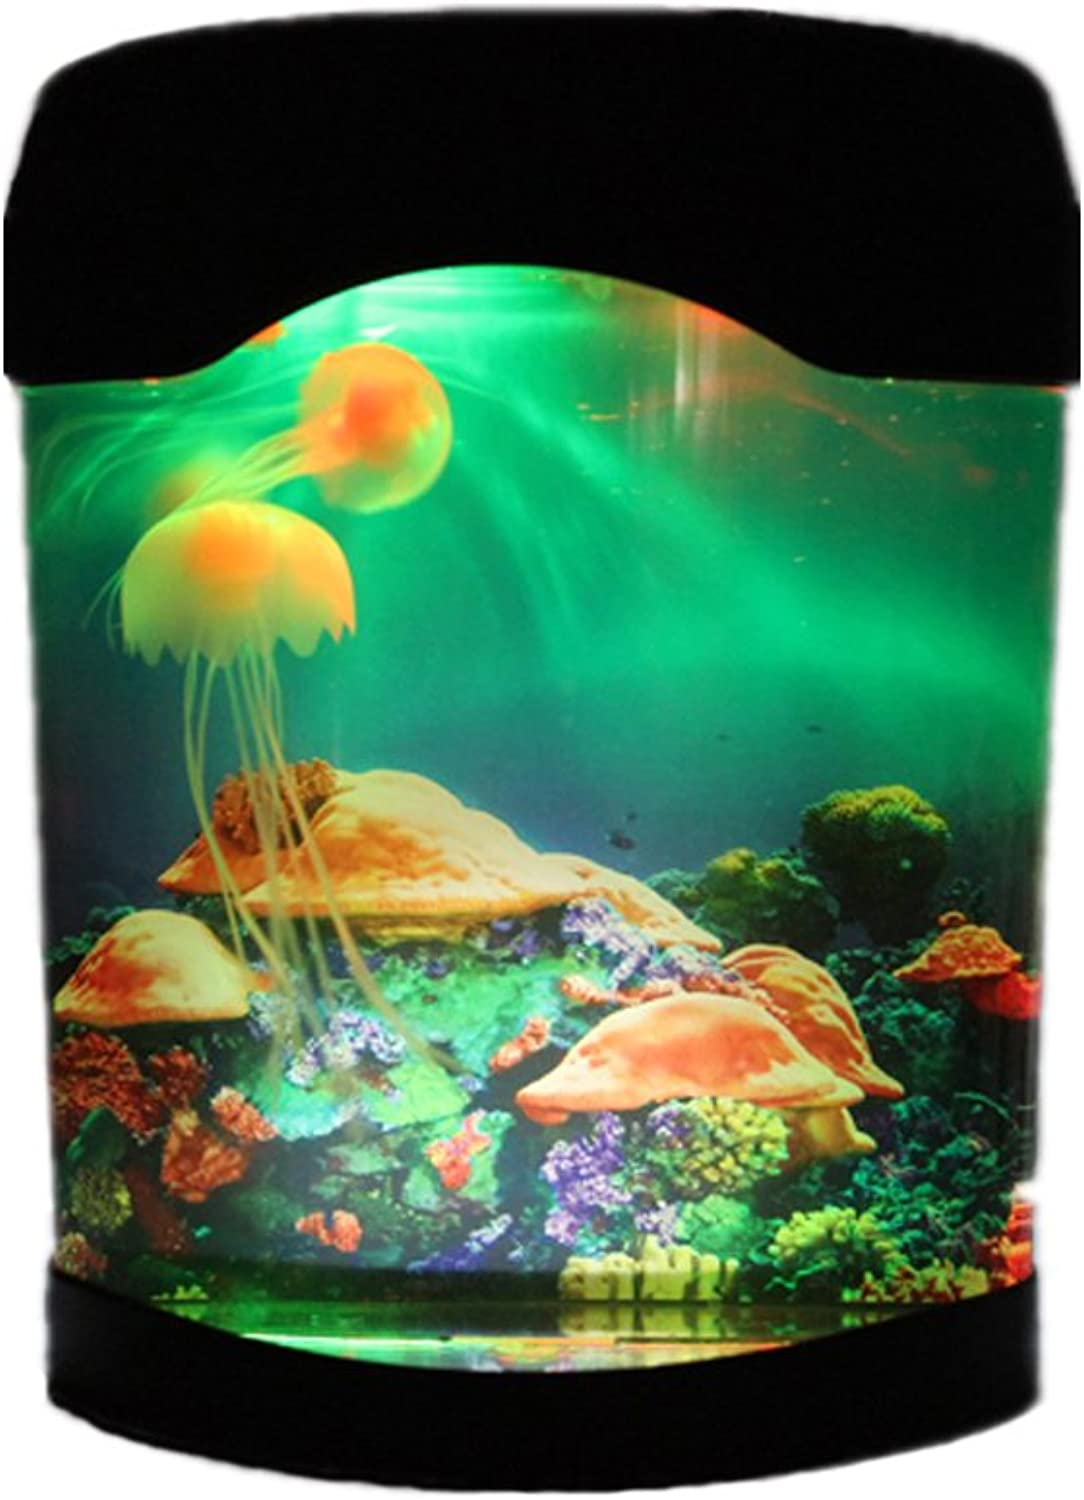 NAMEO Aquarium Kit with Jellyfish & 5 colorful LED Lights for Valentines Gift Birthday Present